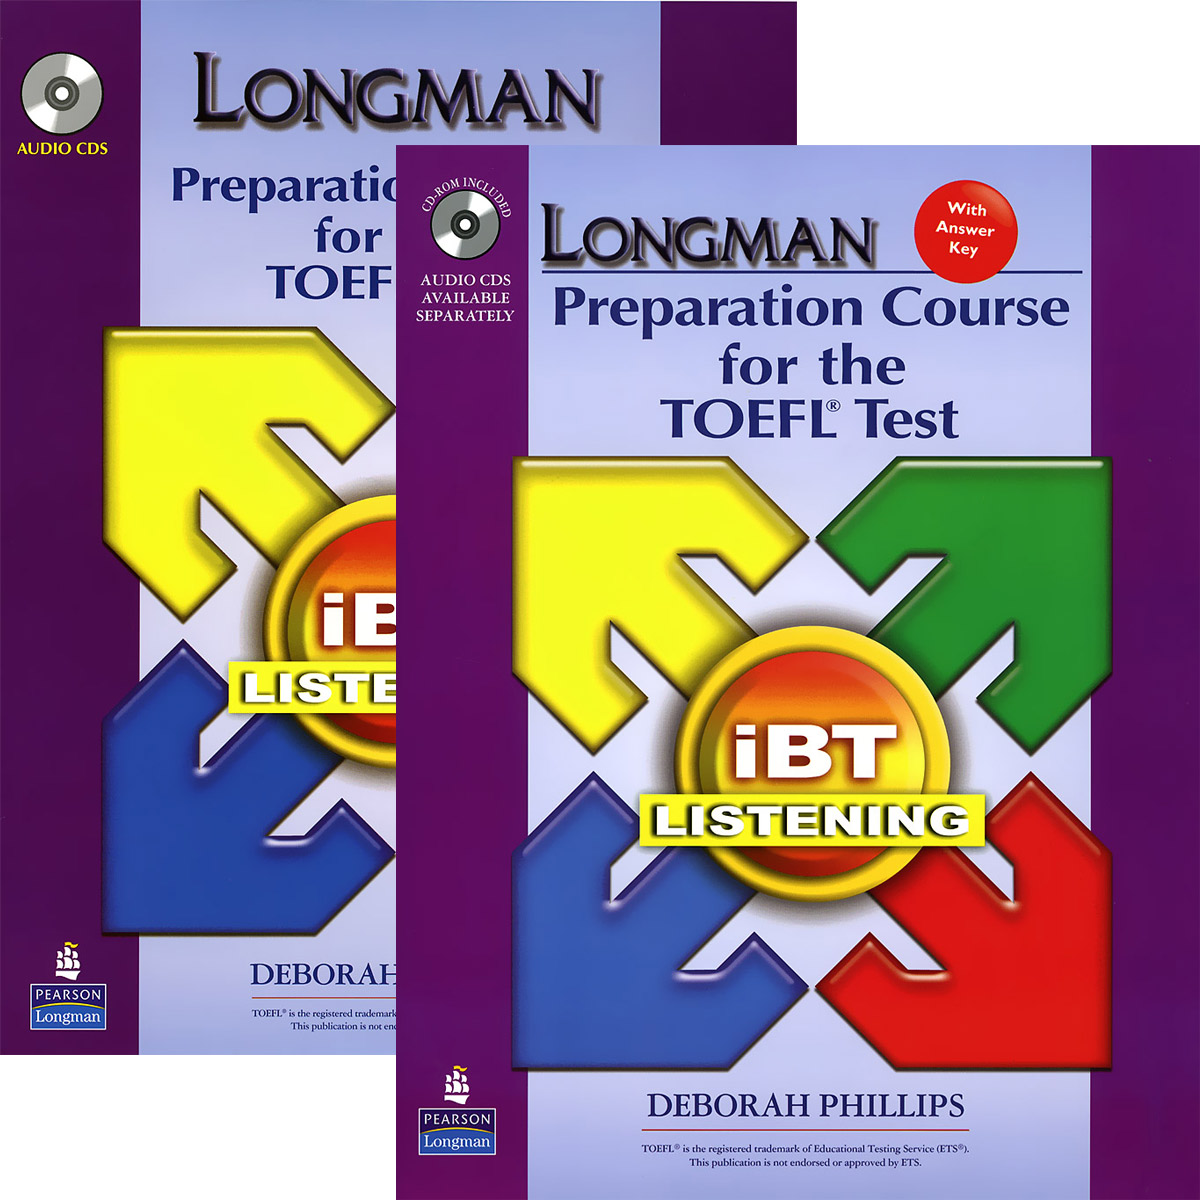 Longman Preparation Course for the TOEFL Test: iBT Listening (аудиокурс на 6 CD) купить